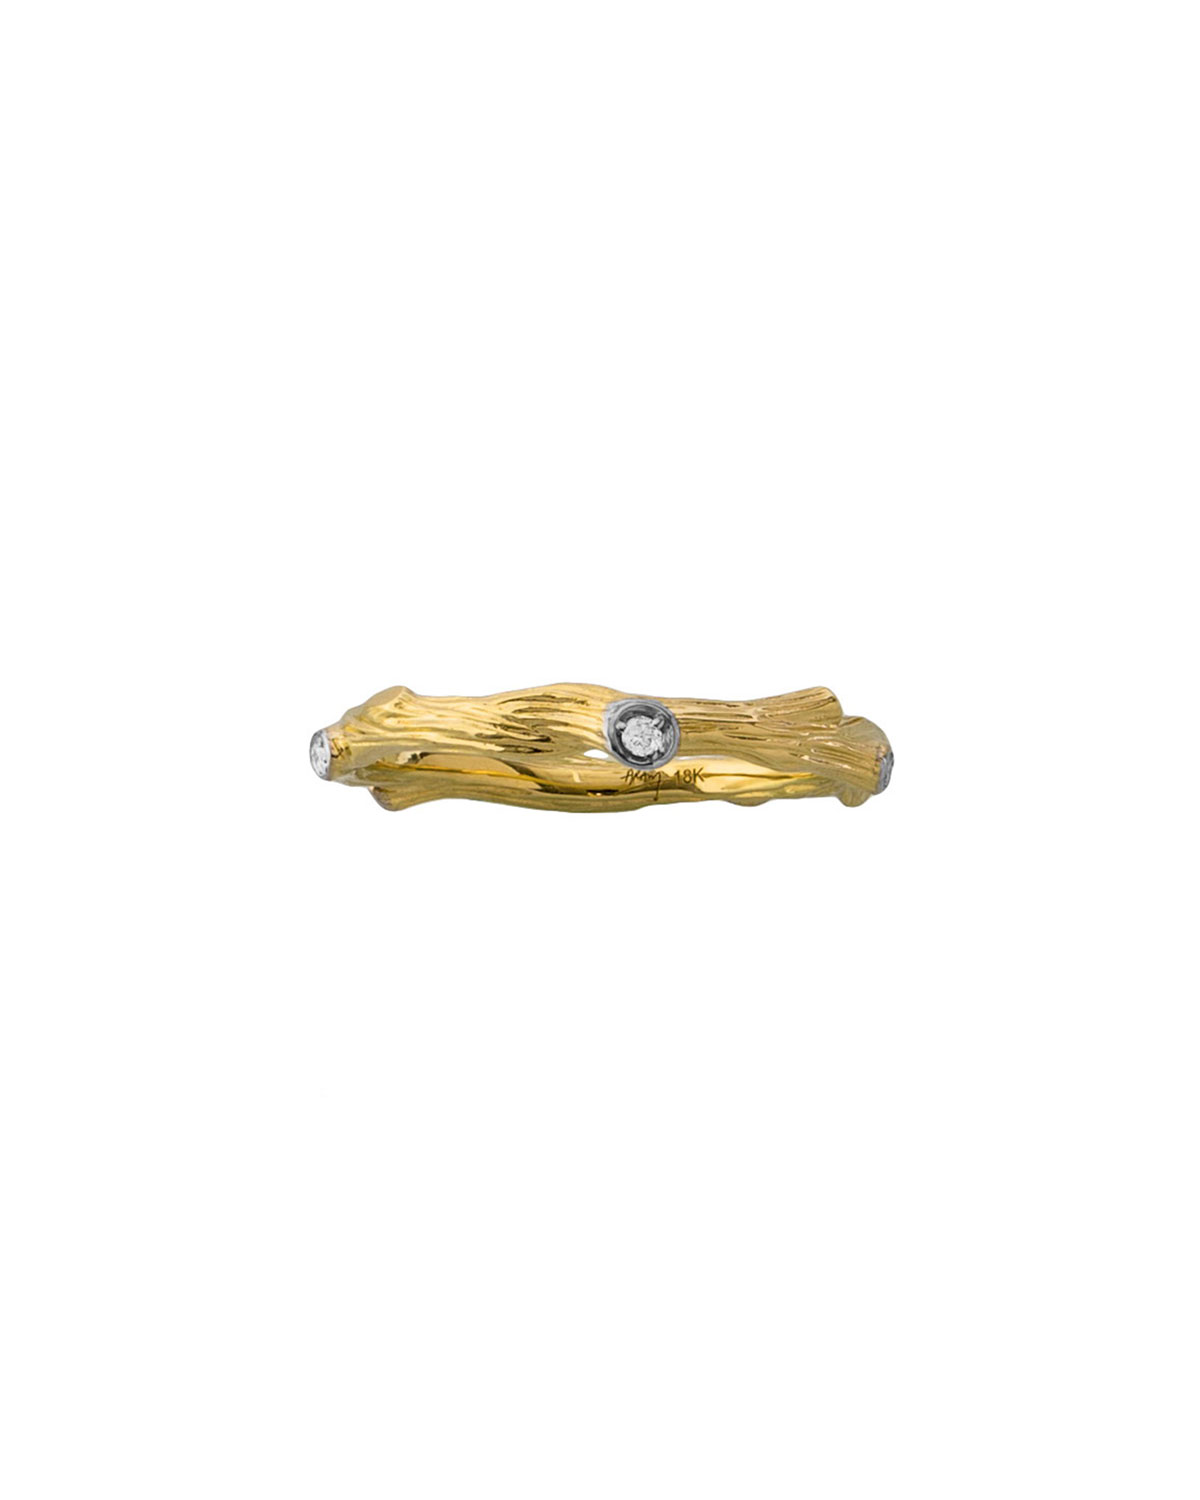 18k Enchanted Forest Band Ring w/ Diamonds